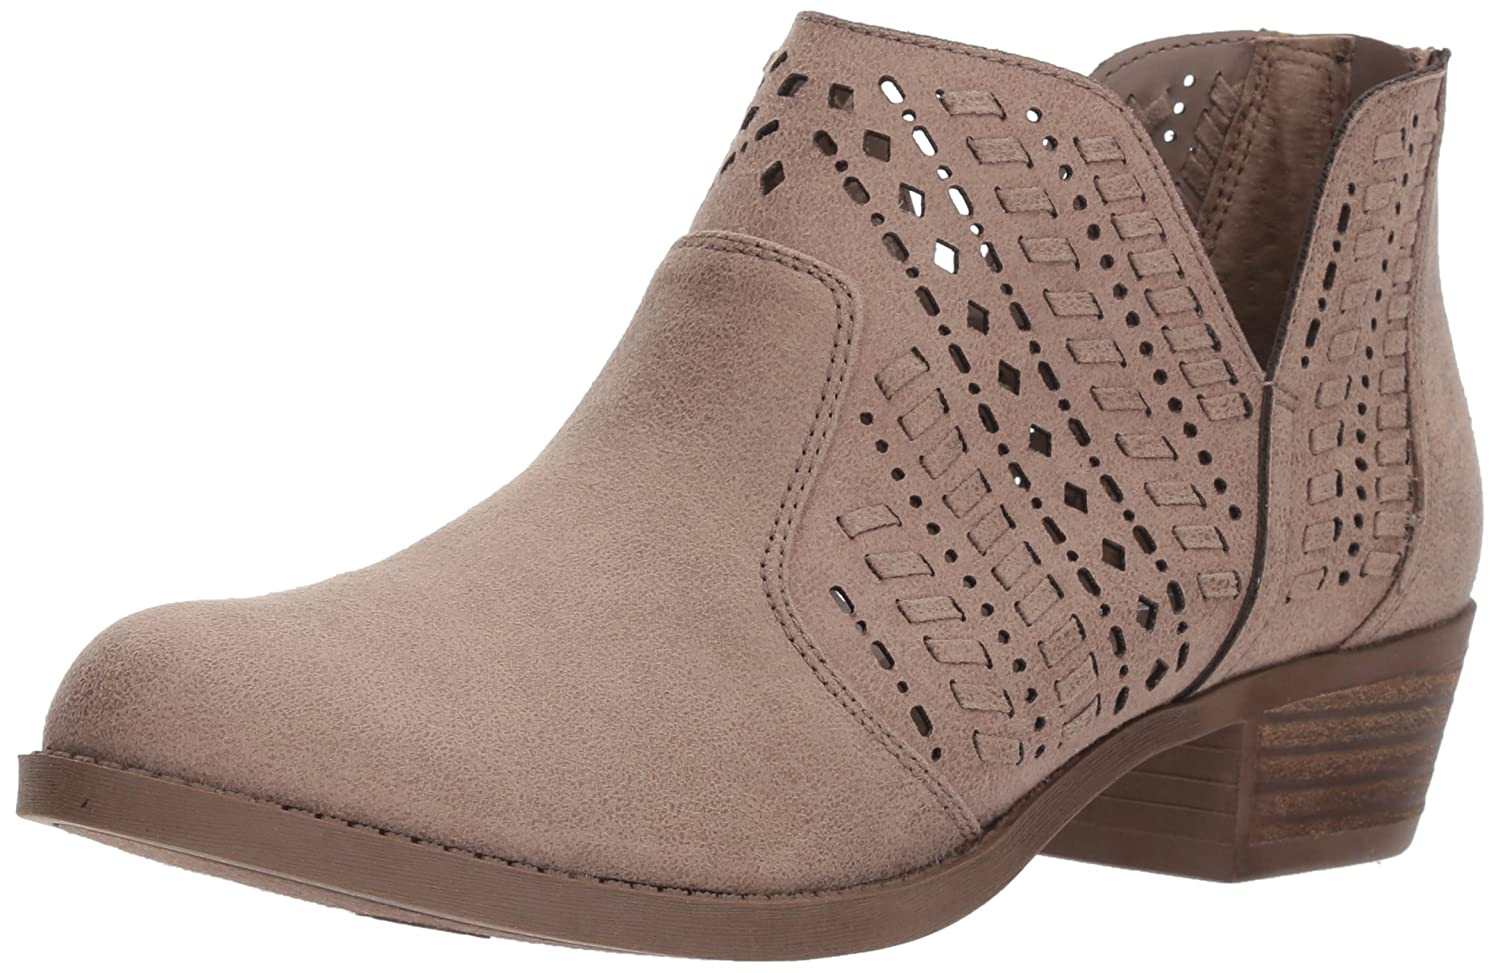 Carlos by Carlos Santana Women's Bentley Ankle Boot B077H6H65C 8 B(M) US|Doe